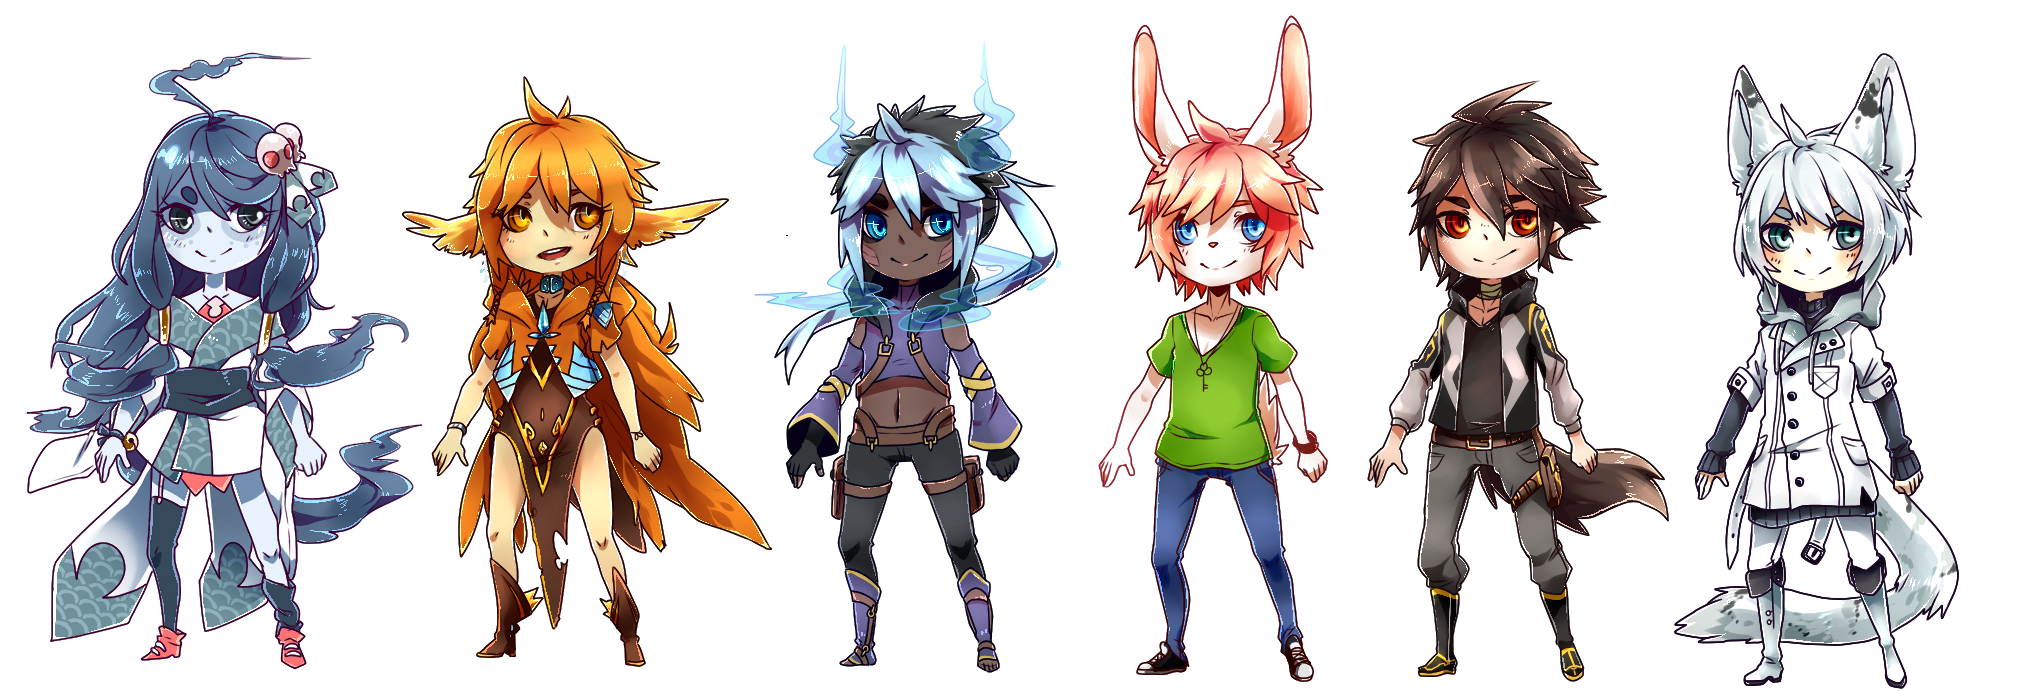 Chibi Batch by Nishipu